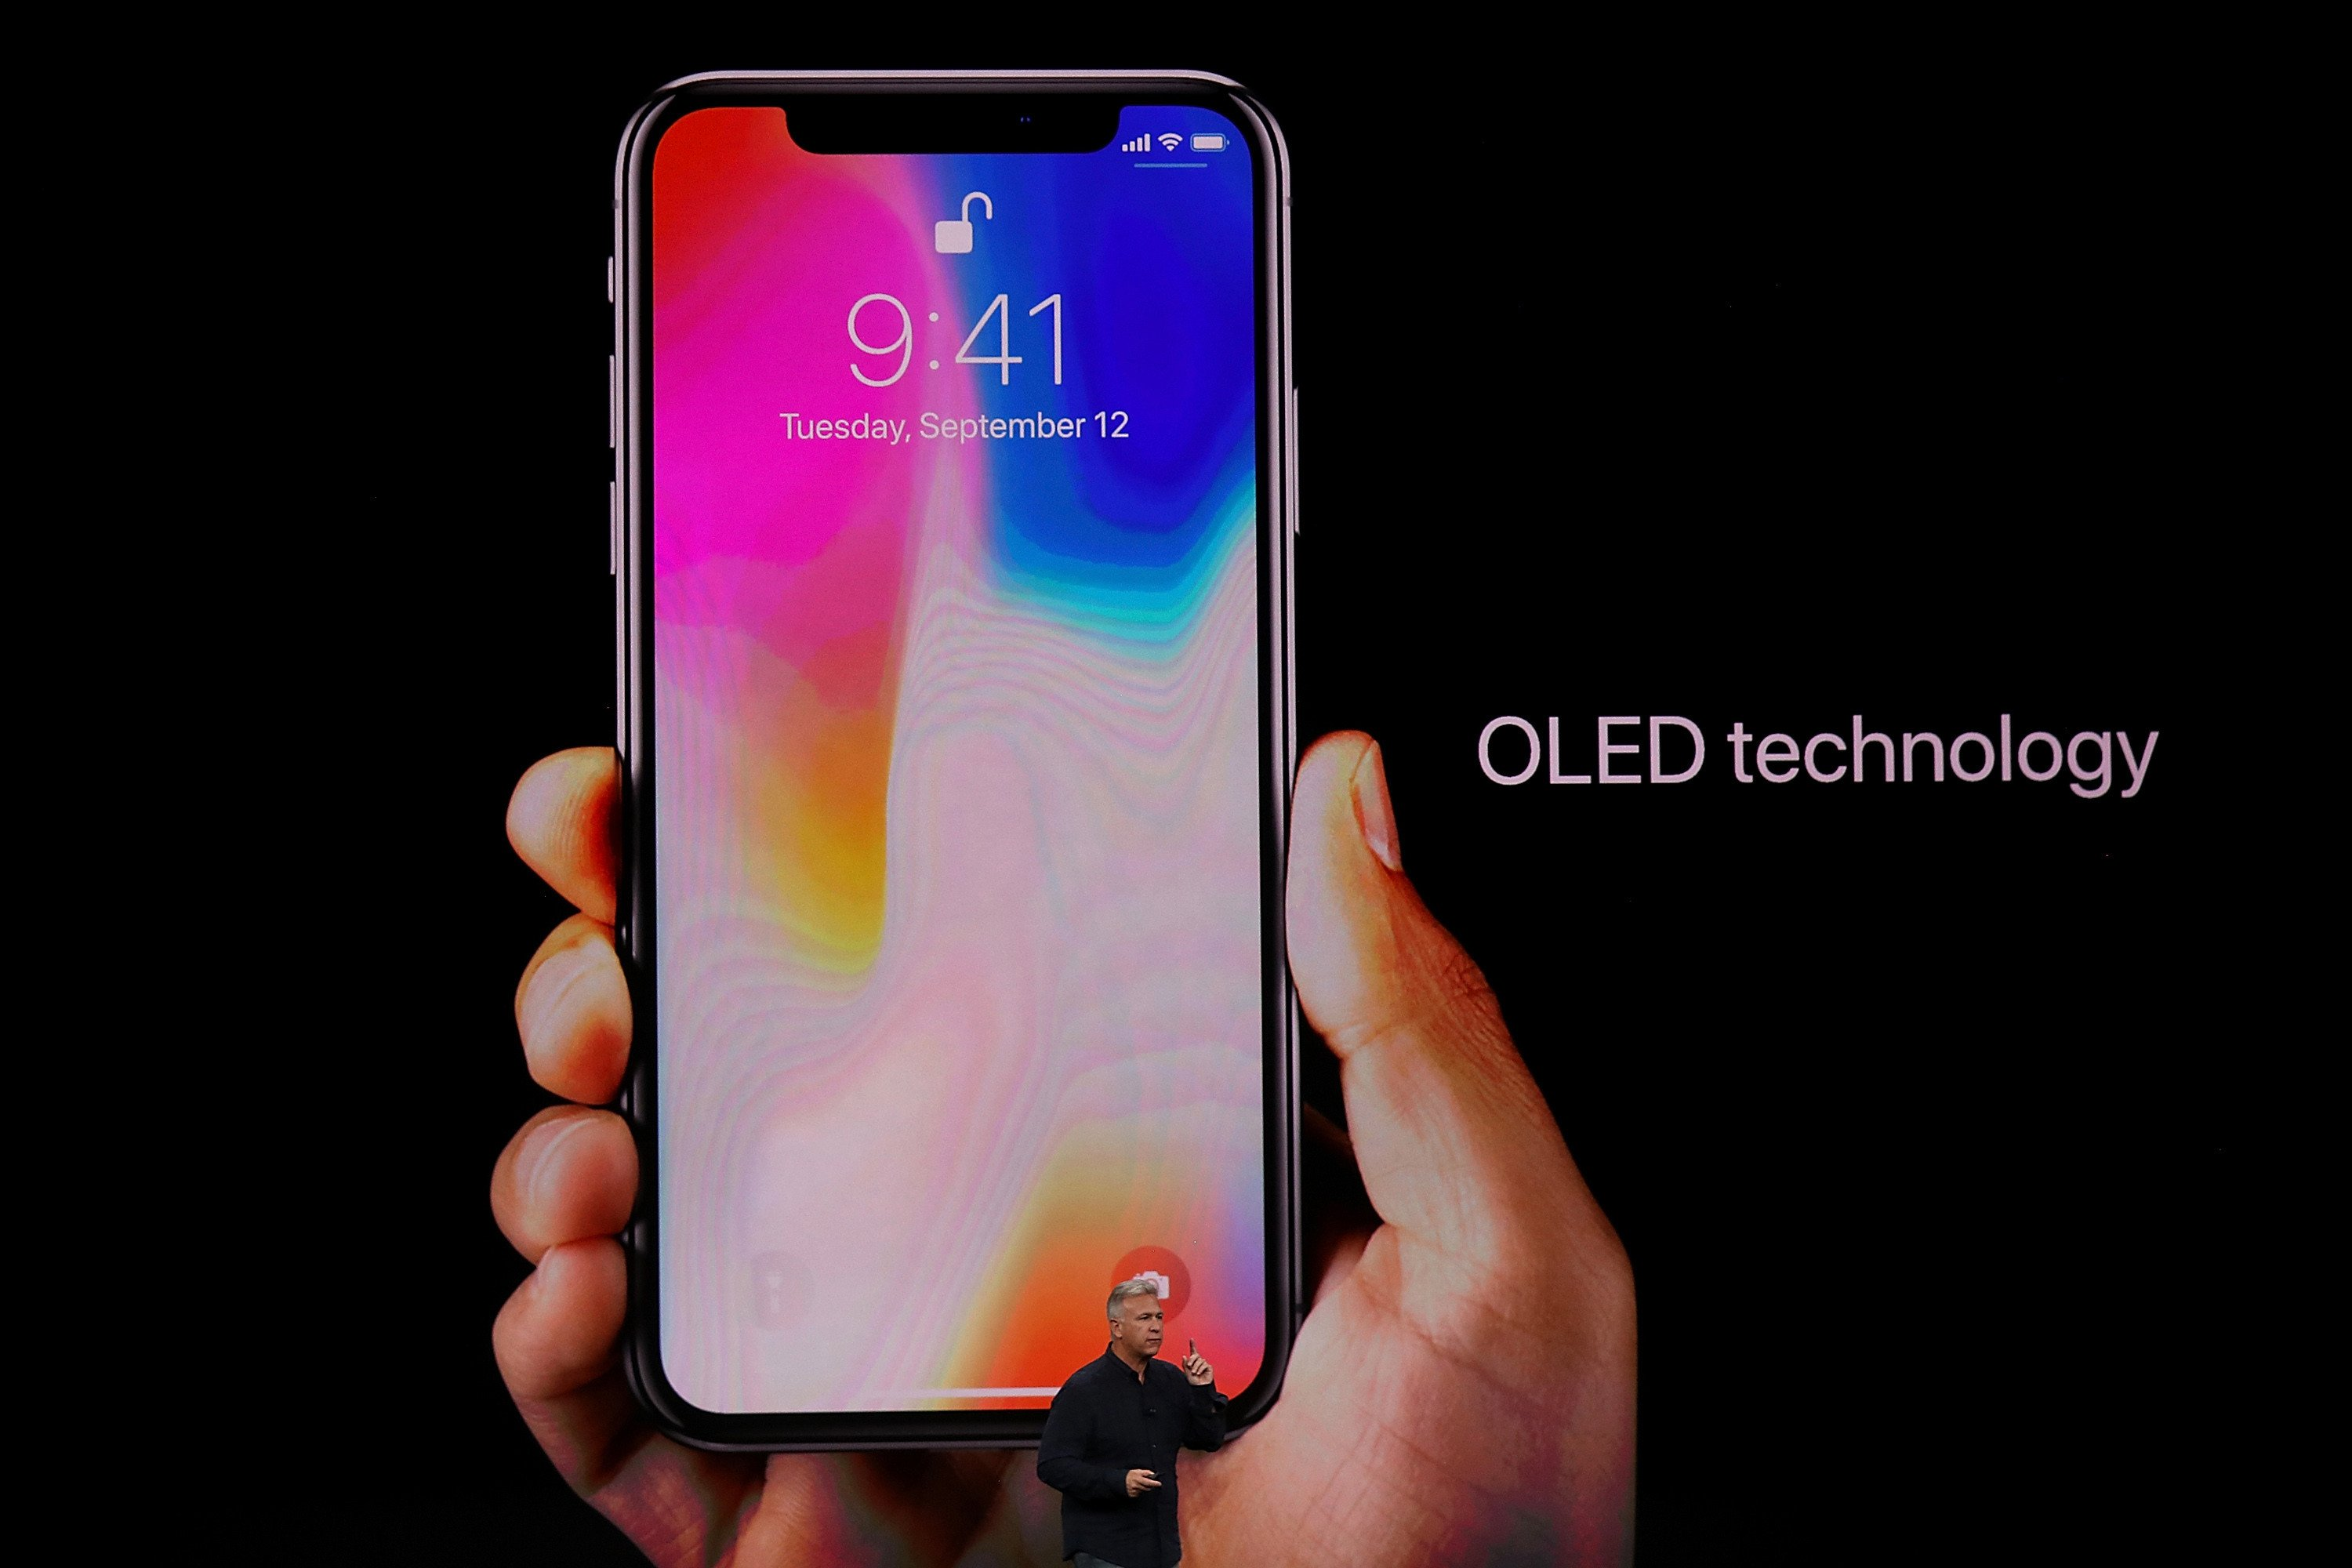 It's getting harder to deny that the iPhone X is a flop